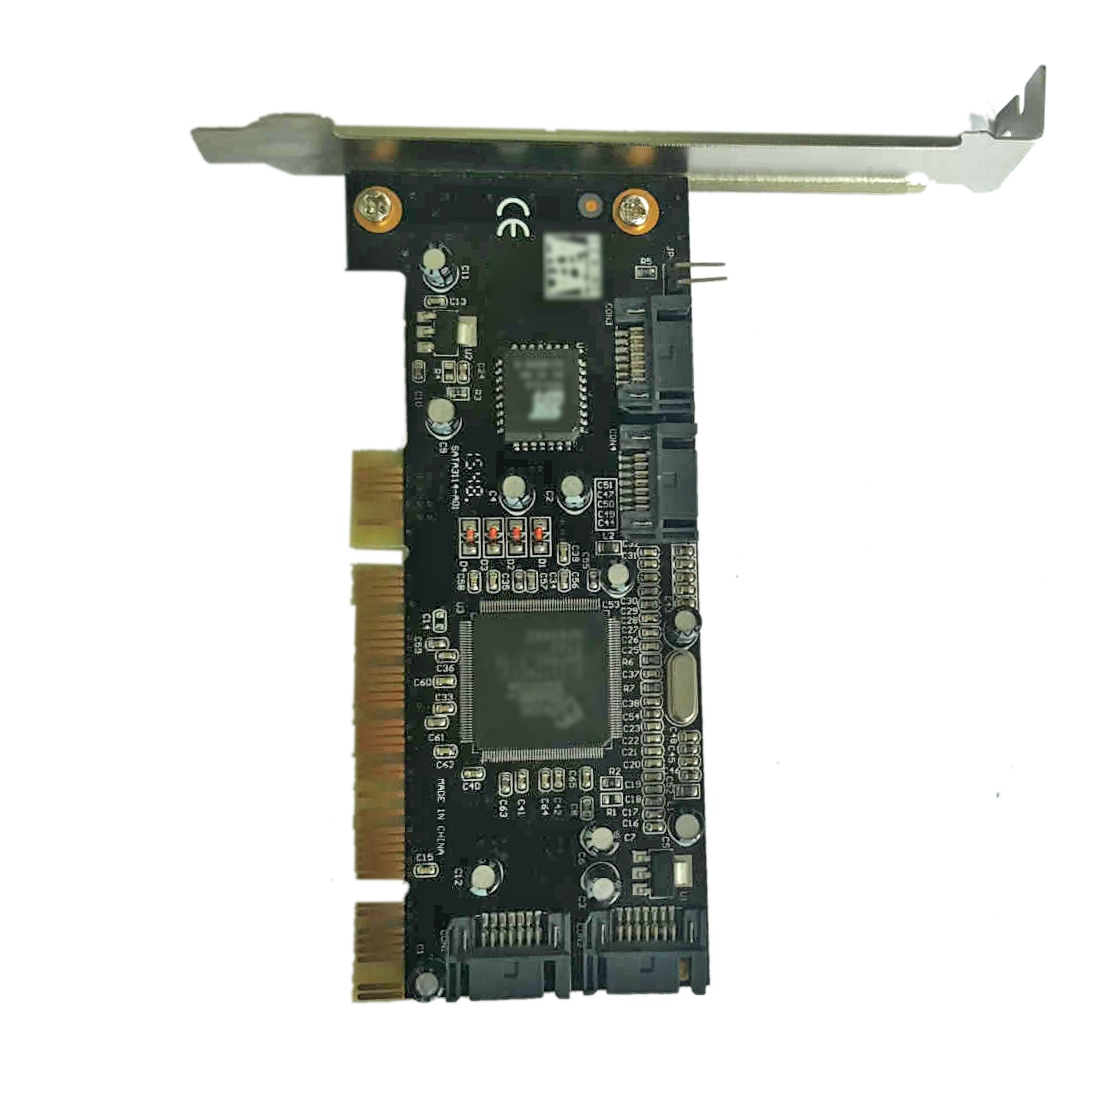 Computer PCI Add On Card 4 Ports SATA For Sil 3114 Chipset RAID 1.5Gbps Expansion Controller Card For PCI Standard 2.3 Desktop